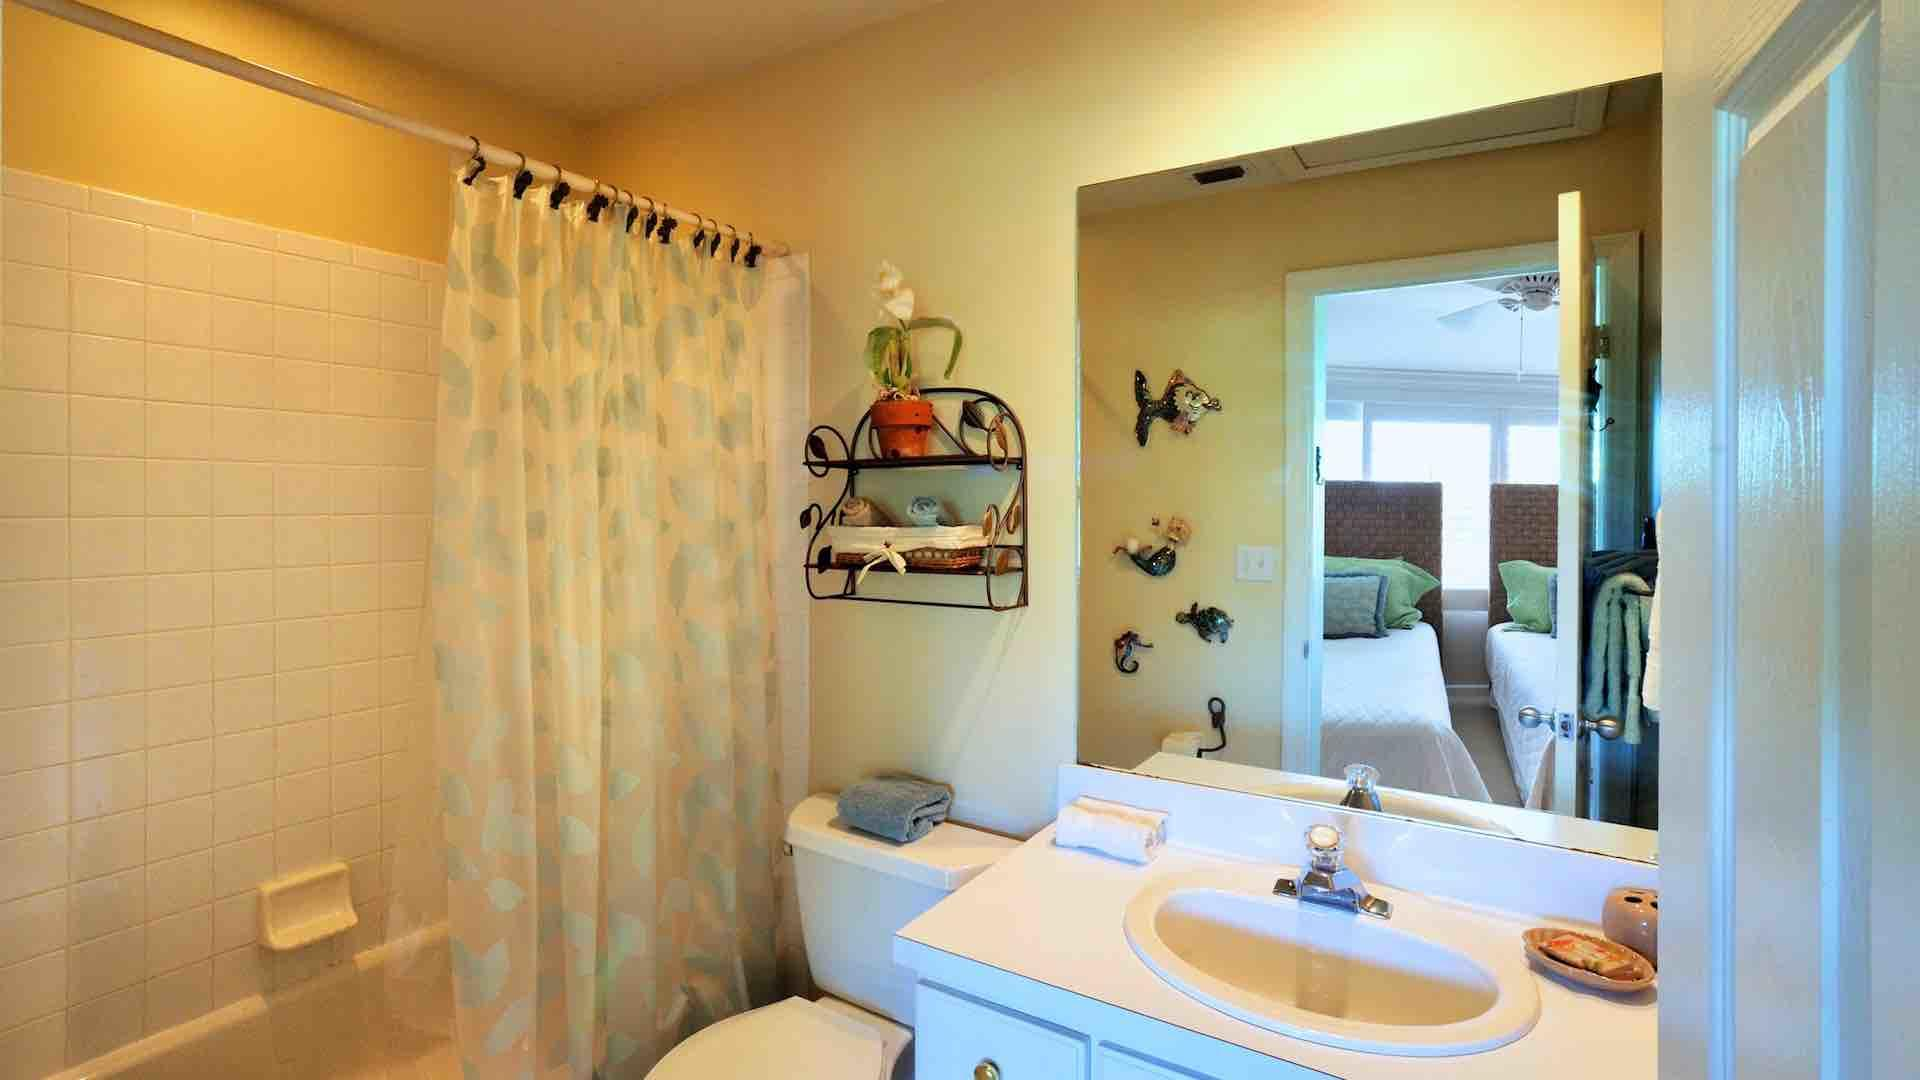 The second en suite bathroom has a shower and tub combo too...